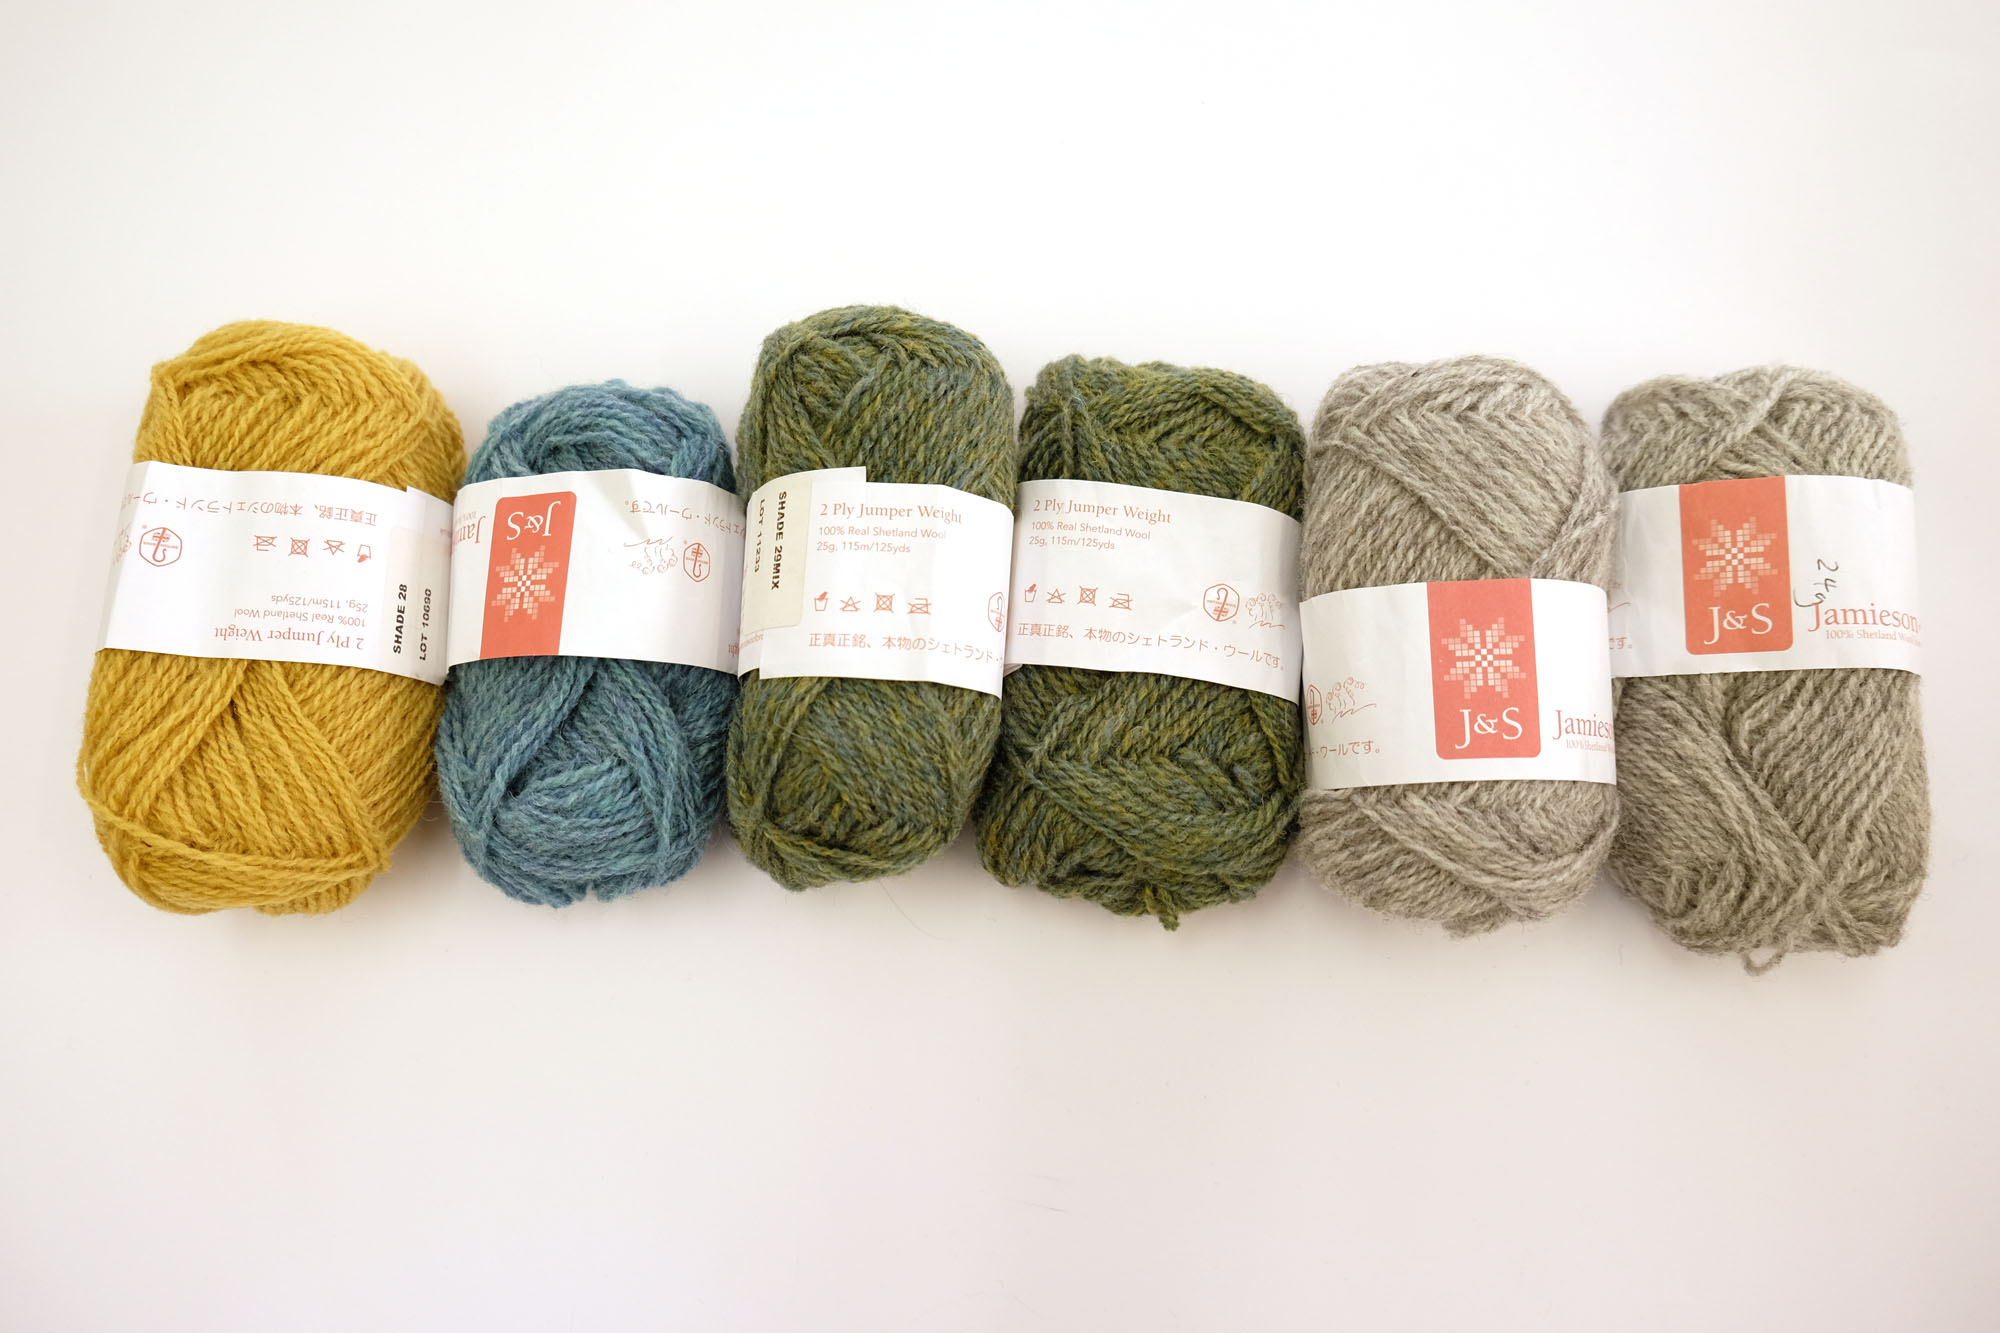 This combination is similar to one of the kits we set up in our online shop (click on the photo and it will take you there). In this version the FC15 blue has been switched to FC34 mix (a heathered turquoise), which is one of my all-time favourite J&S shades. So from left to right the J&S Jumper Weight shades are,28, FC34 mix, 29 mix and 203.